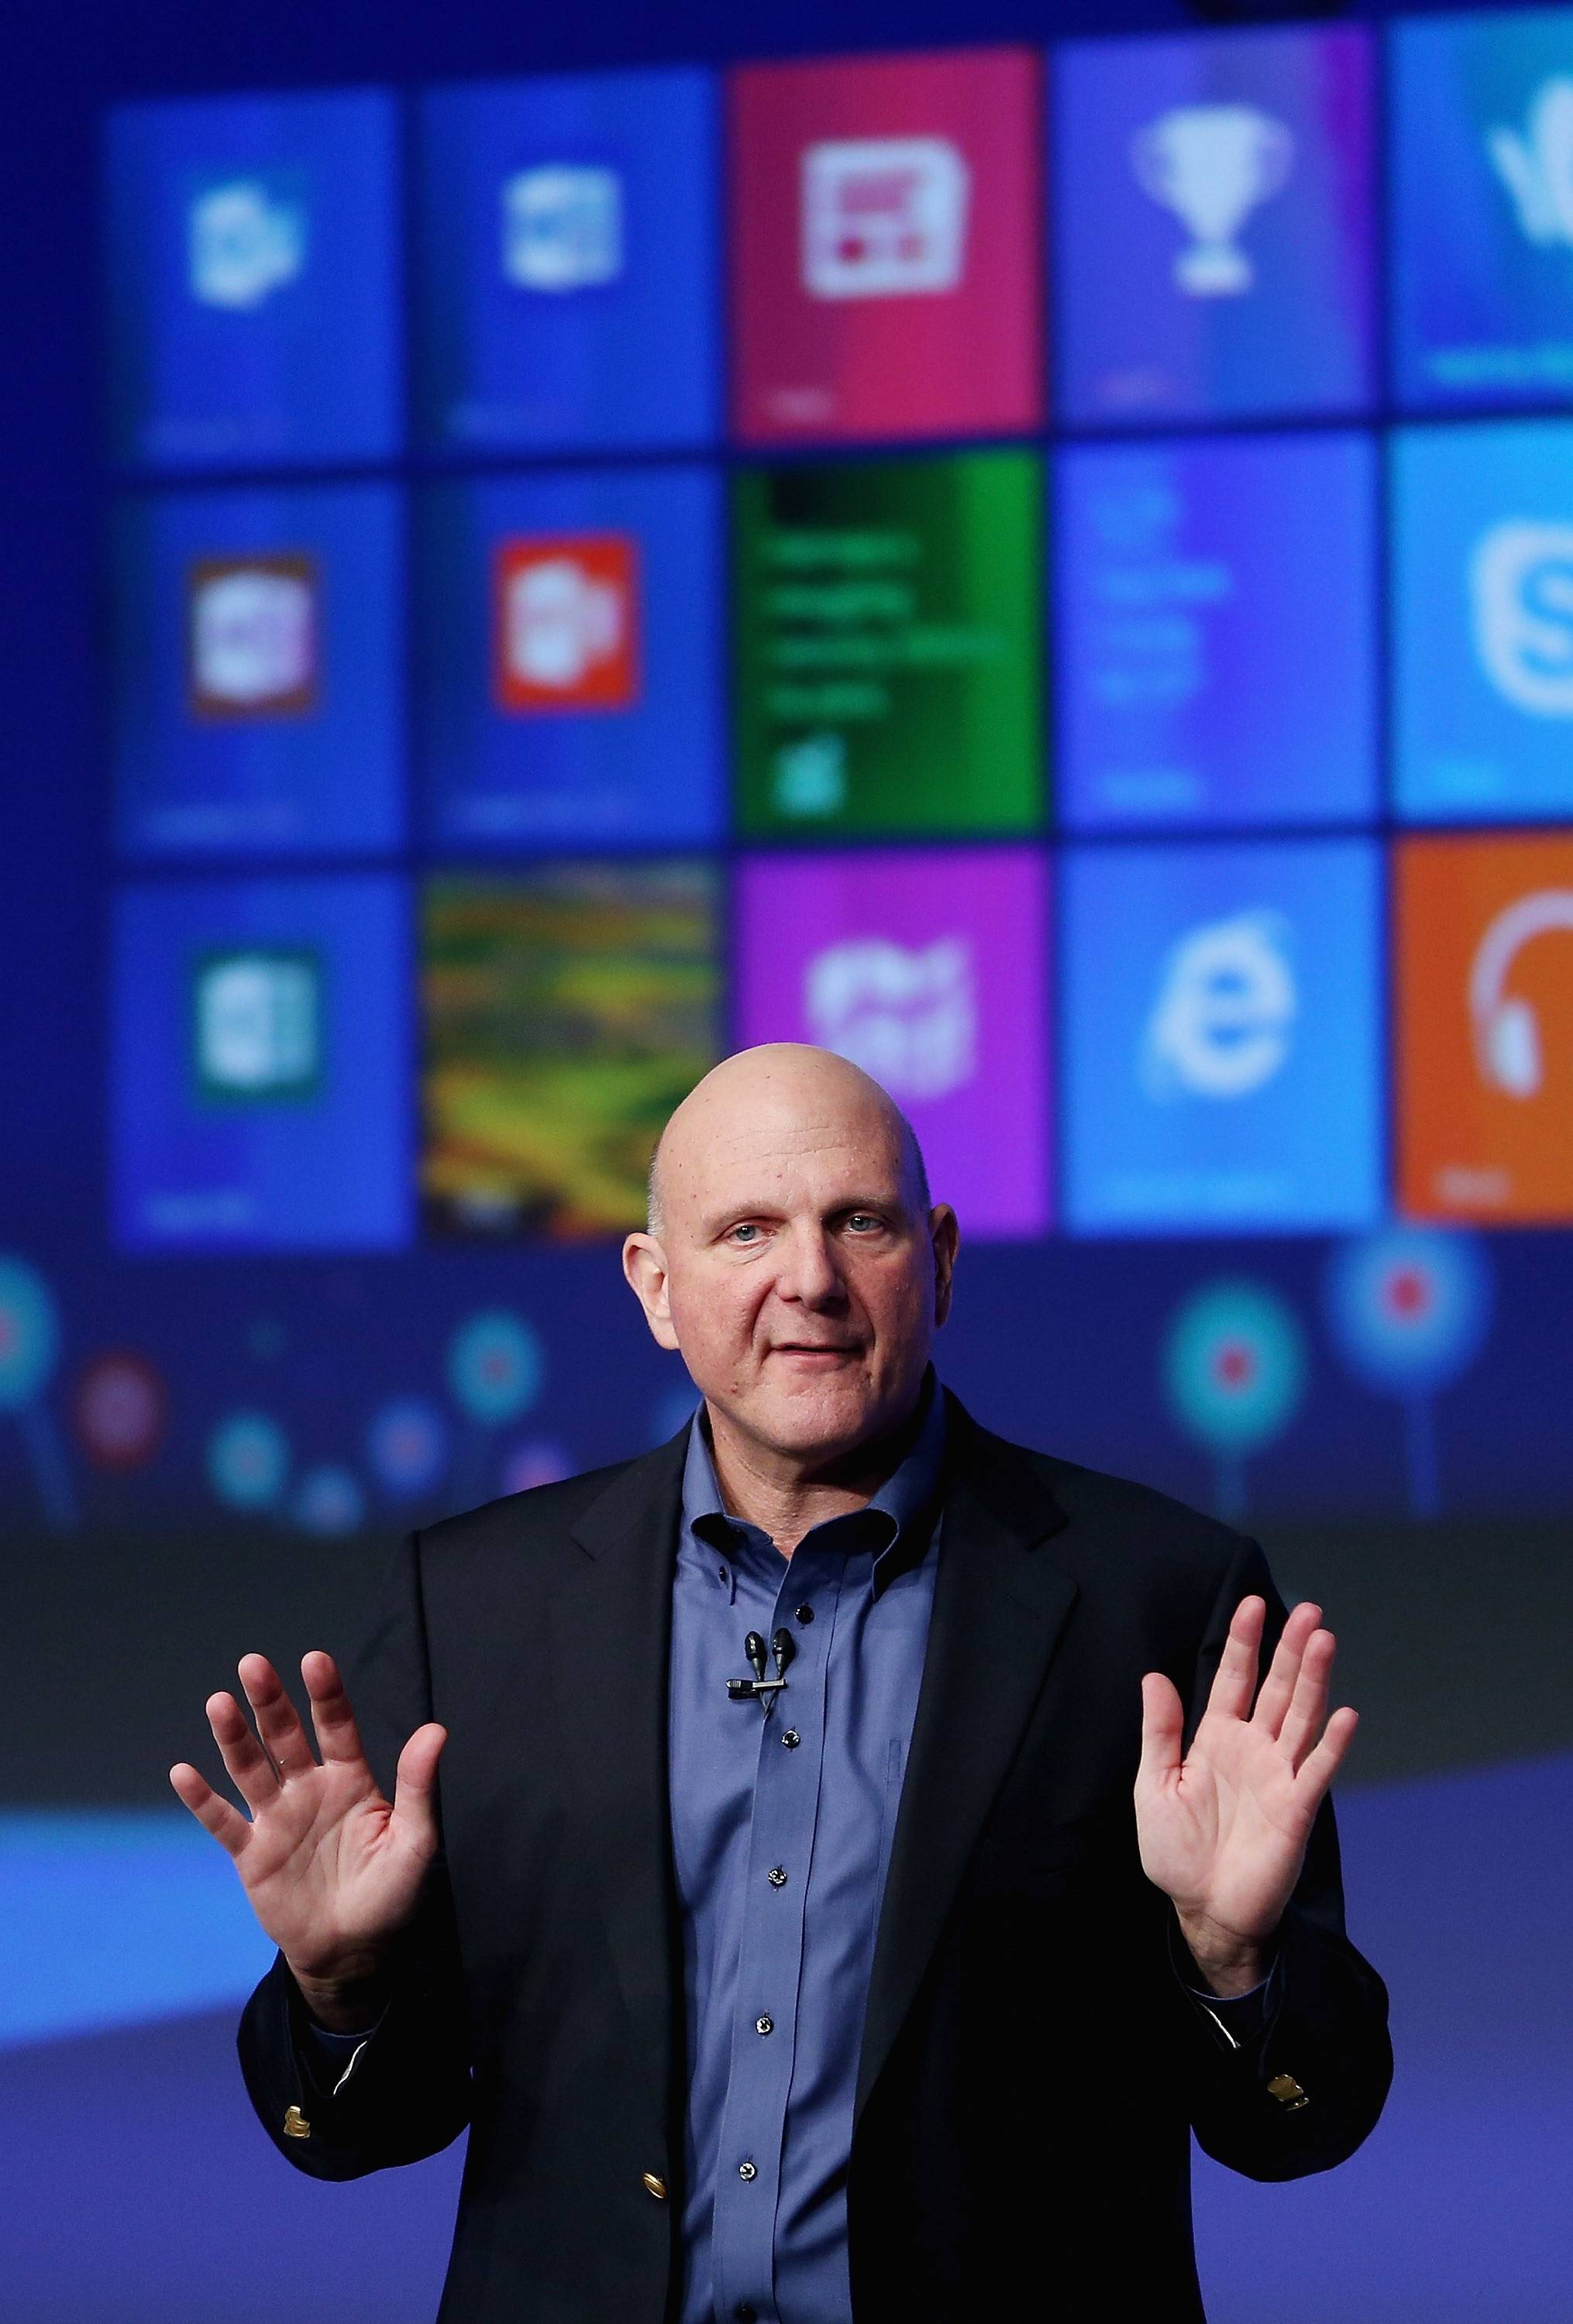 The Los Angeles Times is reporting that former Microsoft chief executive Steve Ballmer, seen in October 2012, has won a bidding war for the Los Angeles Clippers and will pay $2 billion for the team. The other NBA owners have to approve the sale, but they are expected to do so as long as Ballmer reaffirms his pledge to keep the team in Los Angeles.